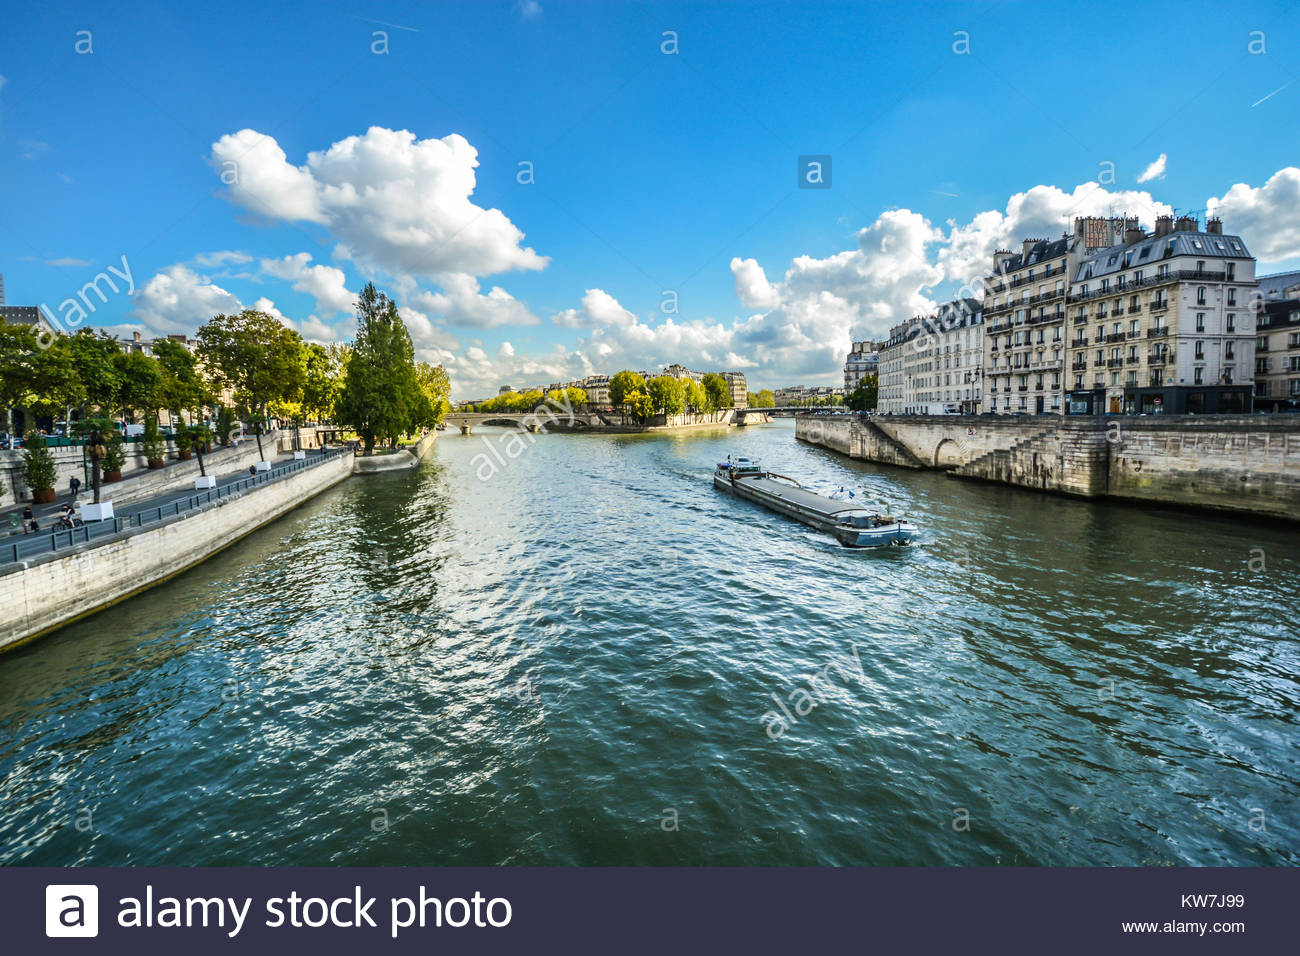 Sunny day view from the Pont d'Arcole near Ile de la Cite as a cruise boat floats down the River Seine - Stock Image